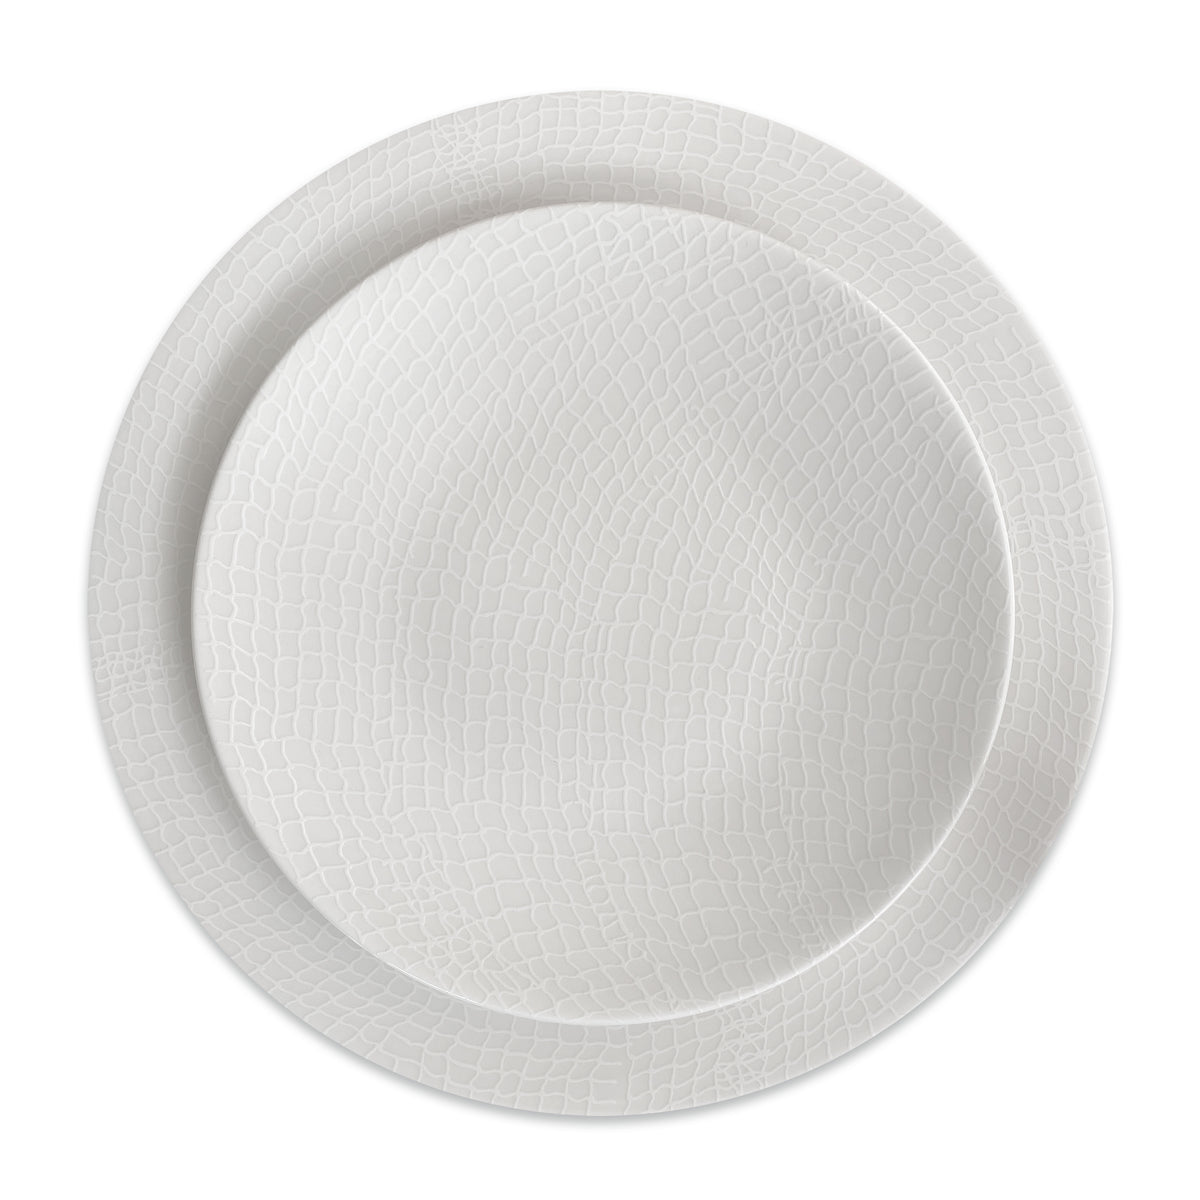 Catch White Coupe Salad or Dessert Plate - Caskata